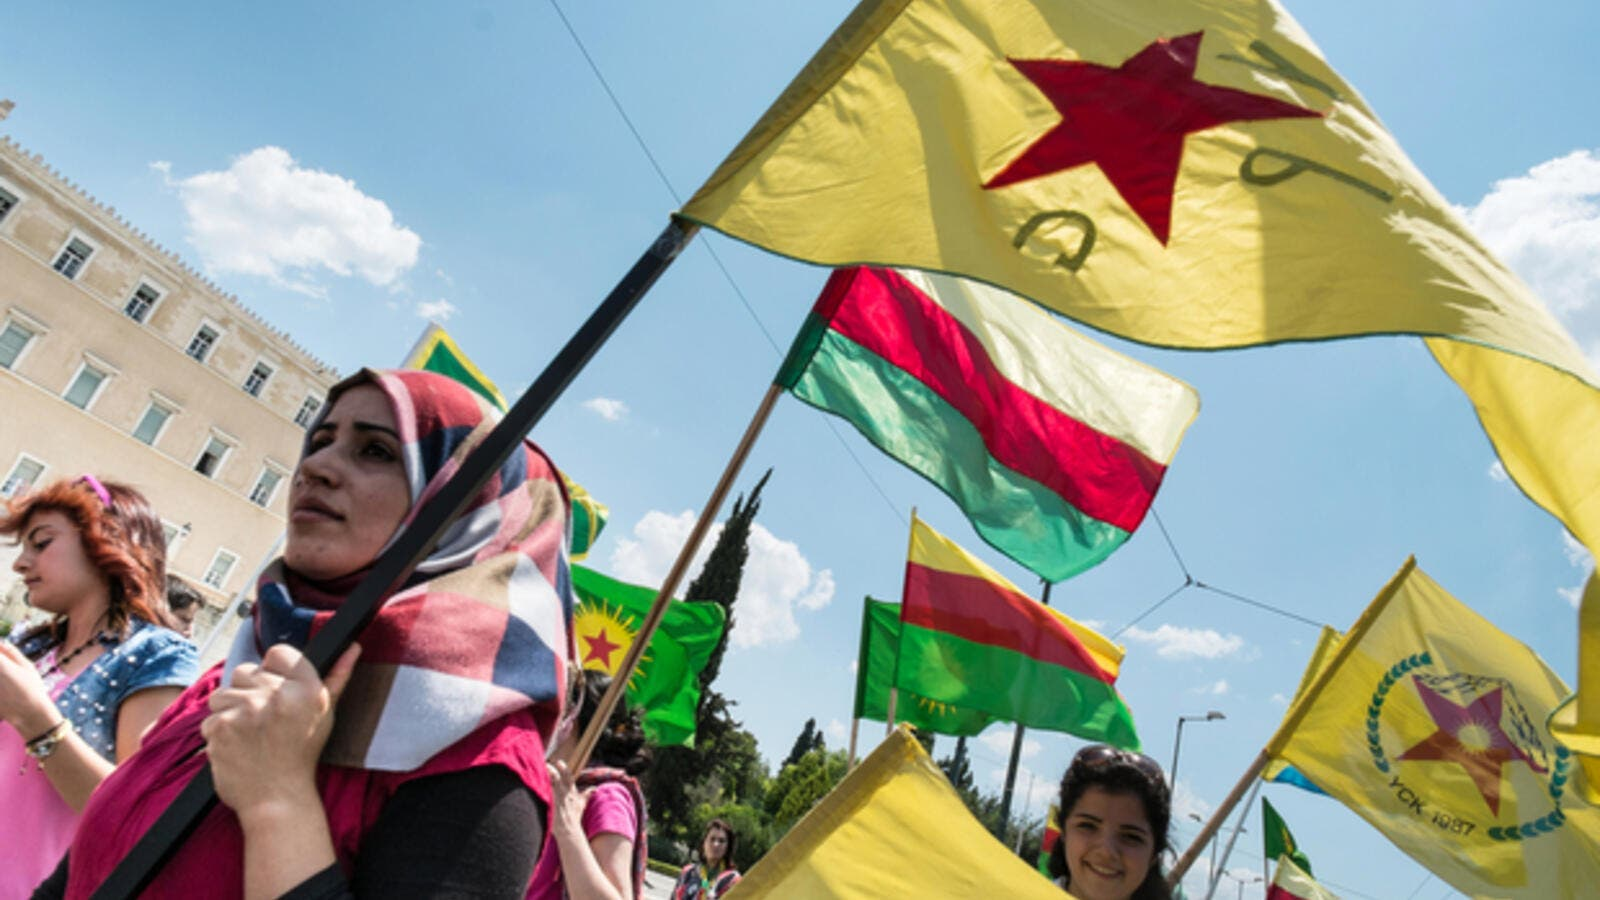 Kurdish leaders of the Democratic Union Party in Syria detained in Prague (AFP/File Photo)